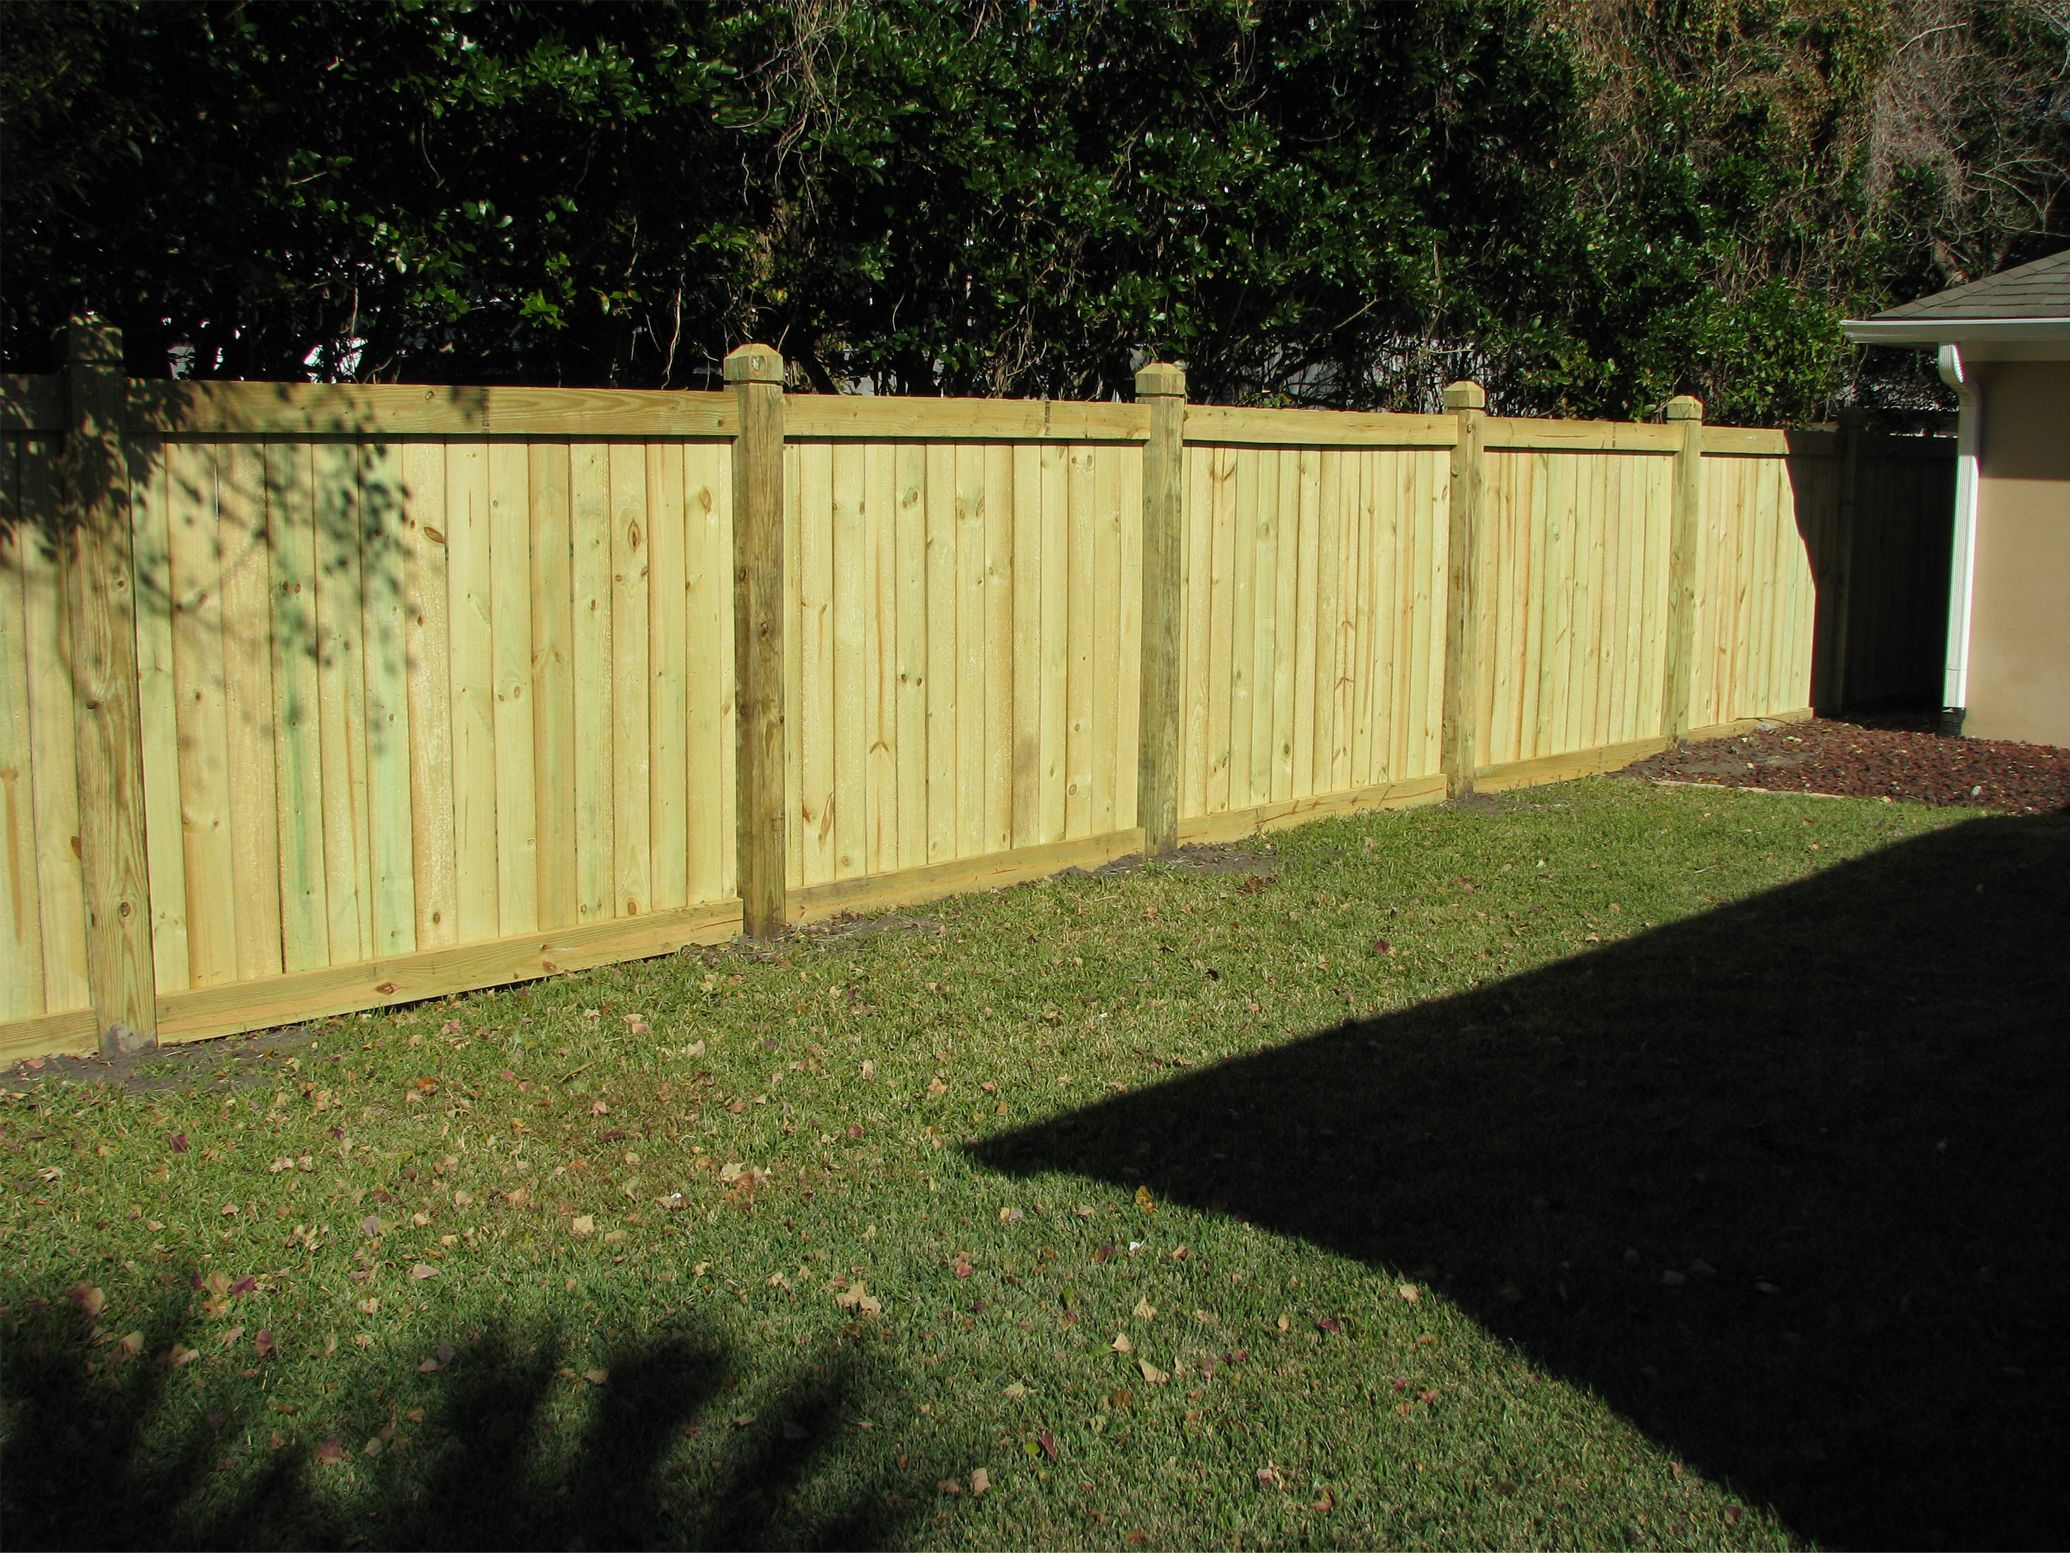 Fence Gate Design Ideas By Wooden: Astounding Wooden Fence Gate Designs